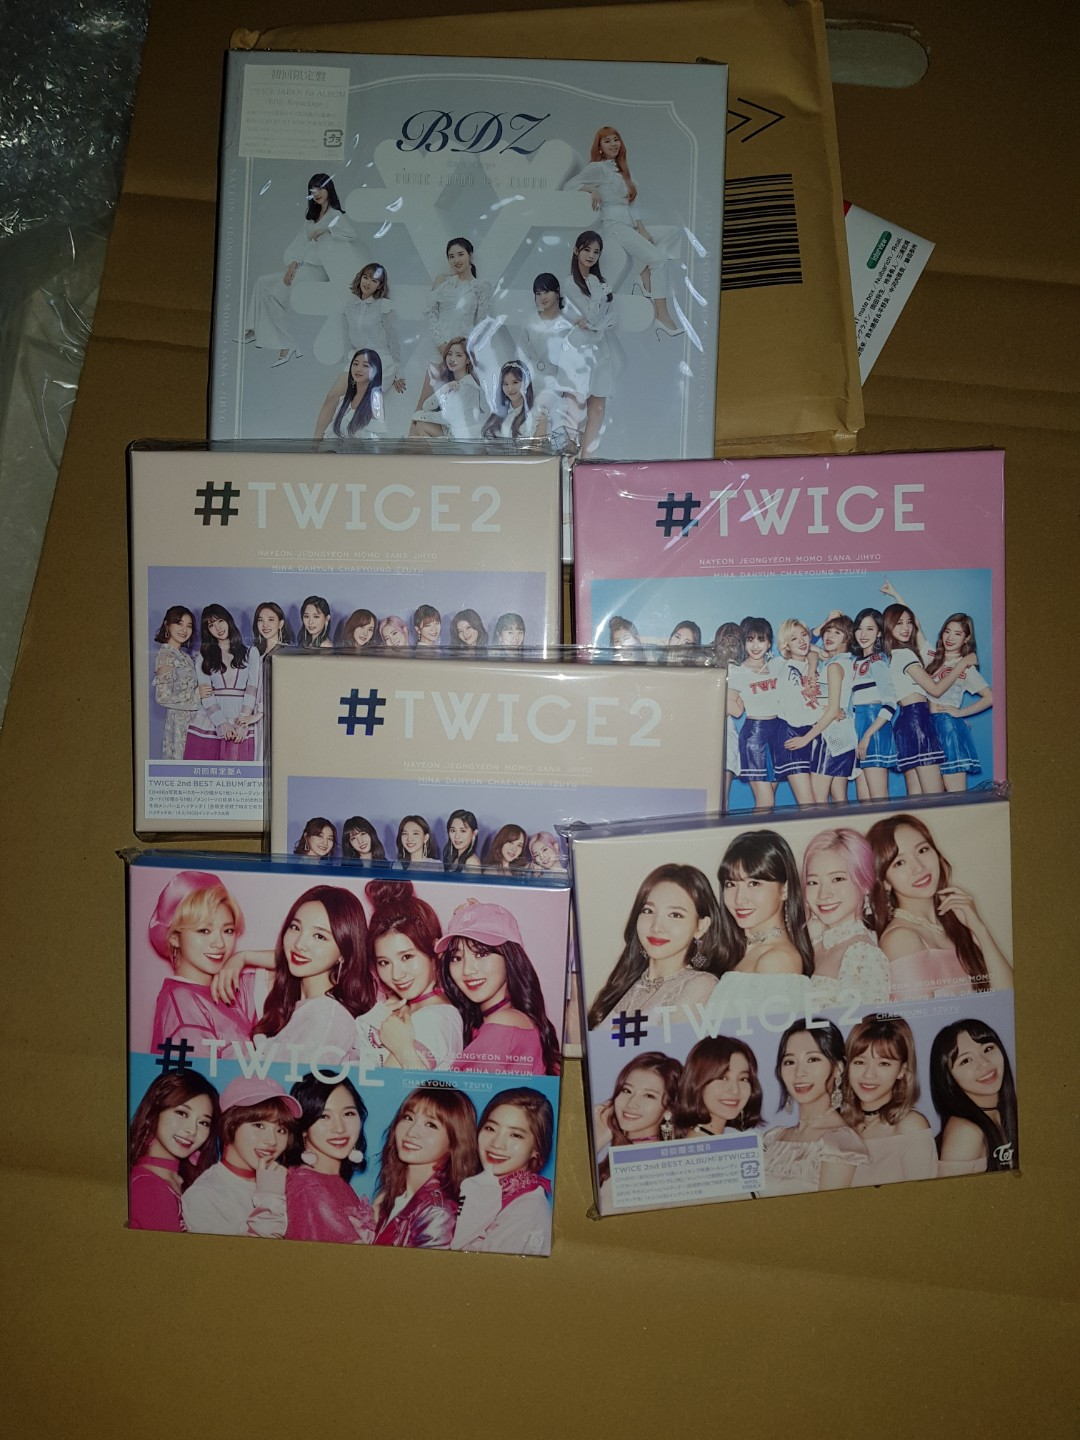 Arrival] Twice Japanese albums, Entertainment, K-Wave on